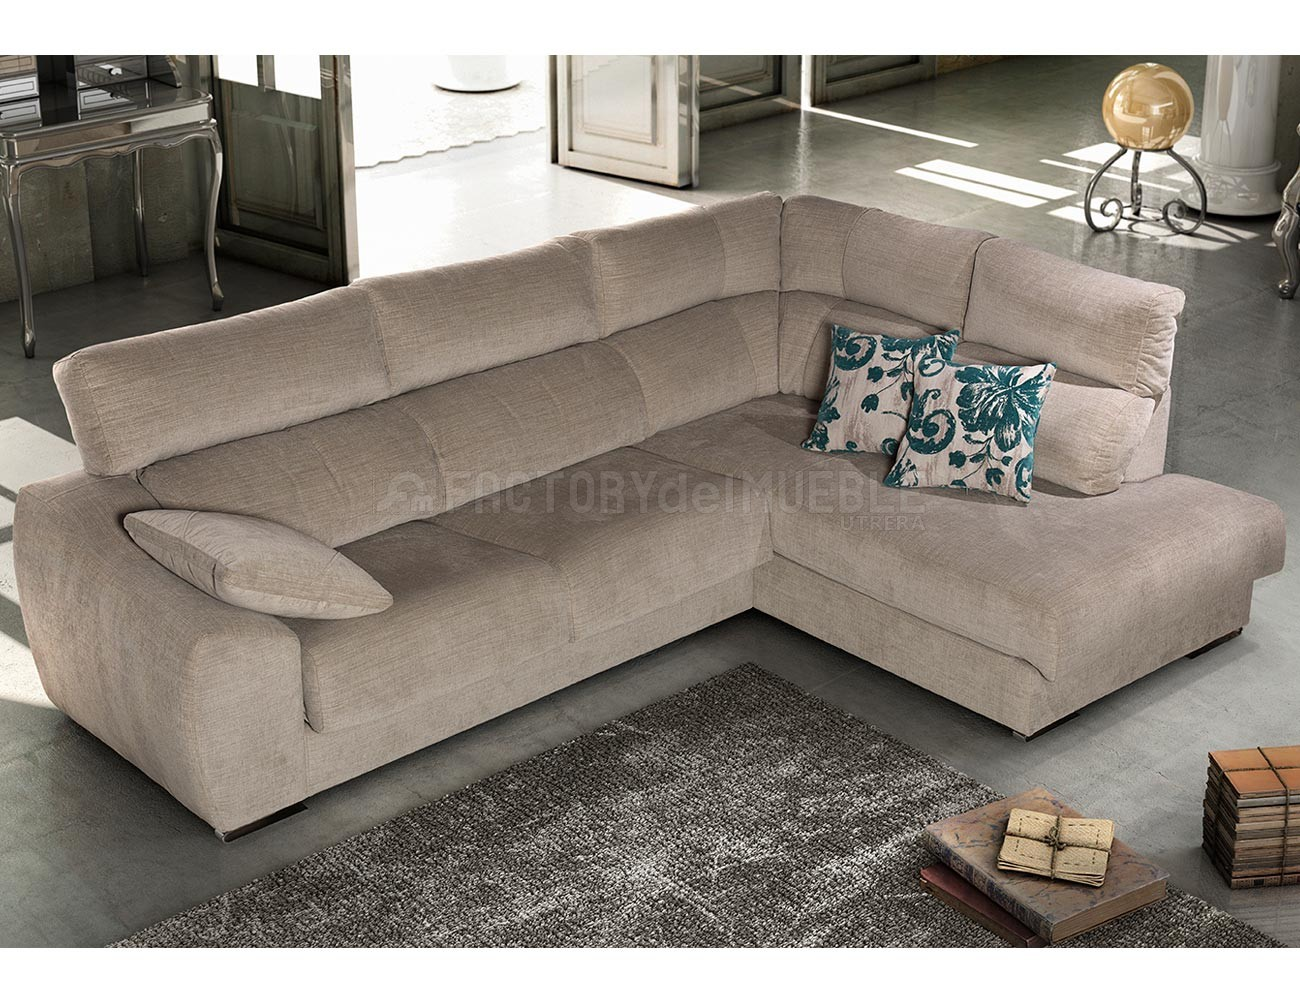 Sofa chaiselongue rincon moderno forma13